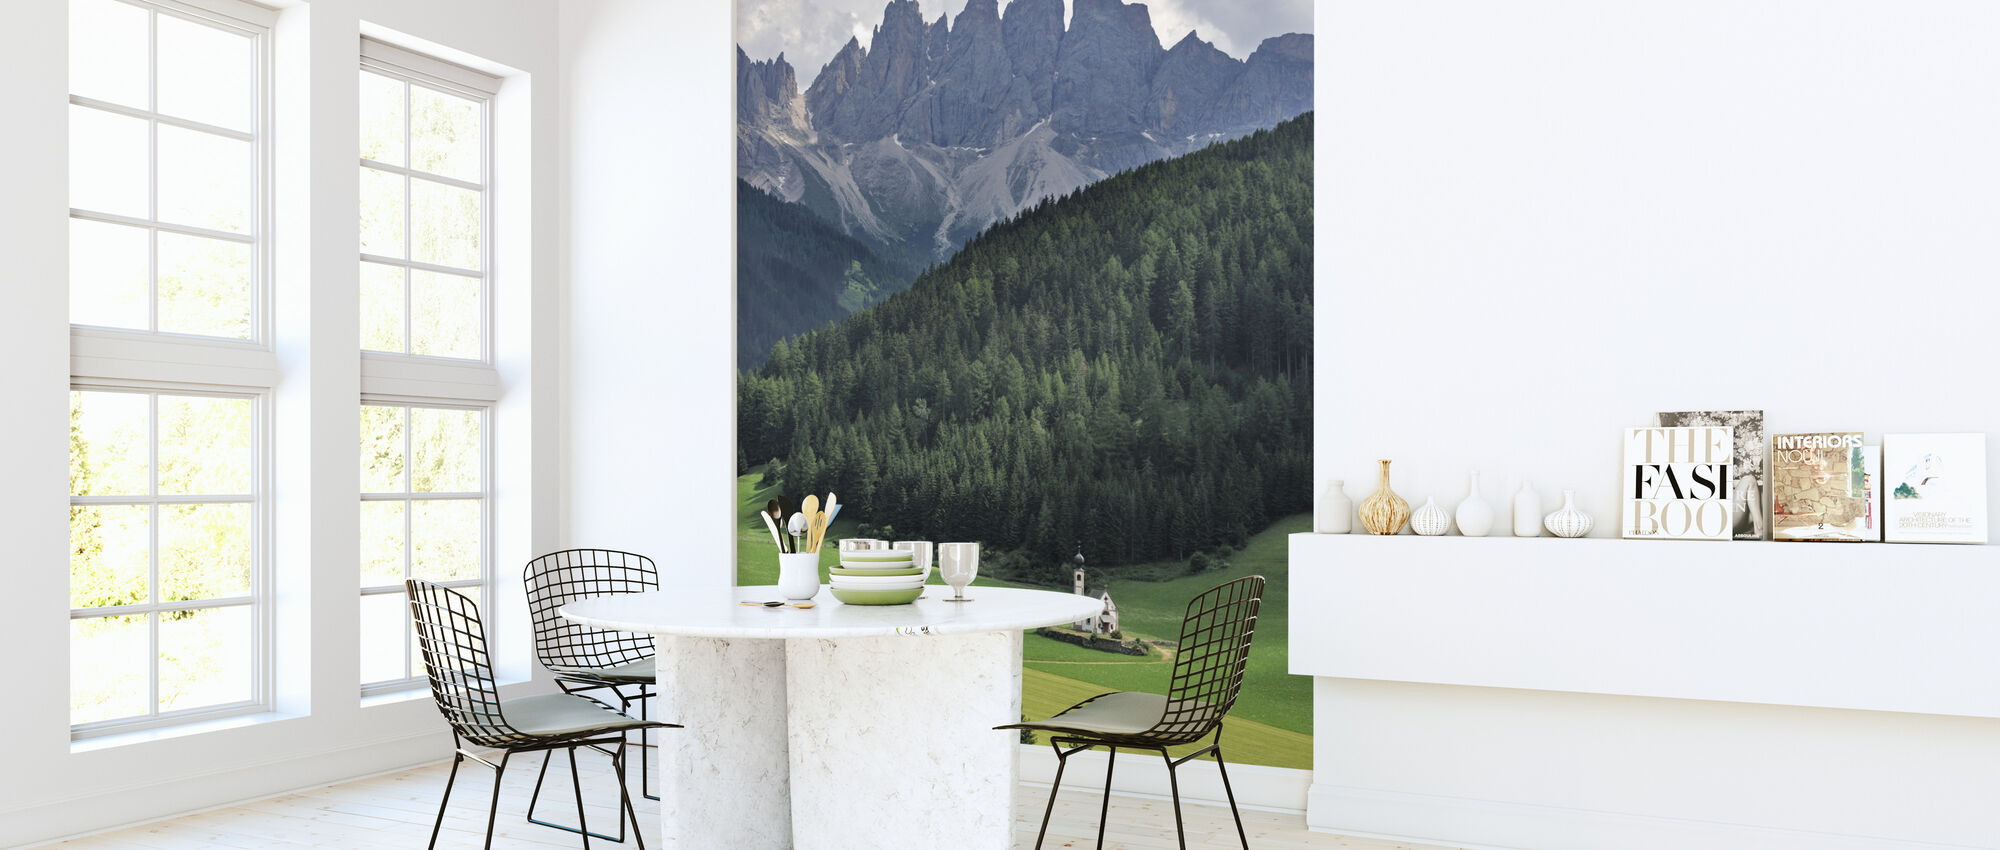 At the Foothills of the Dolomites - Wallpaper - Kitchen